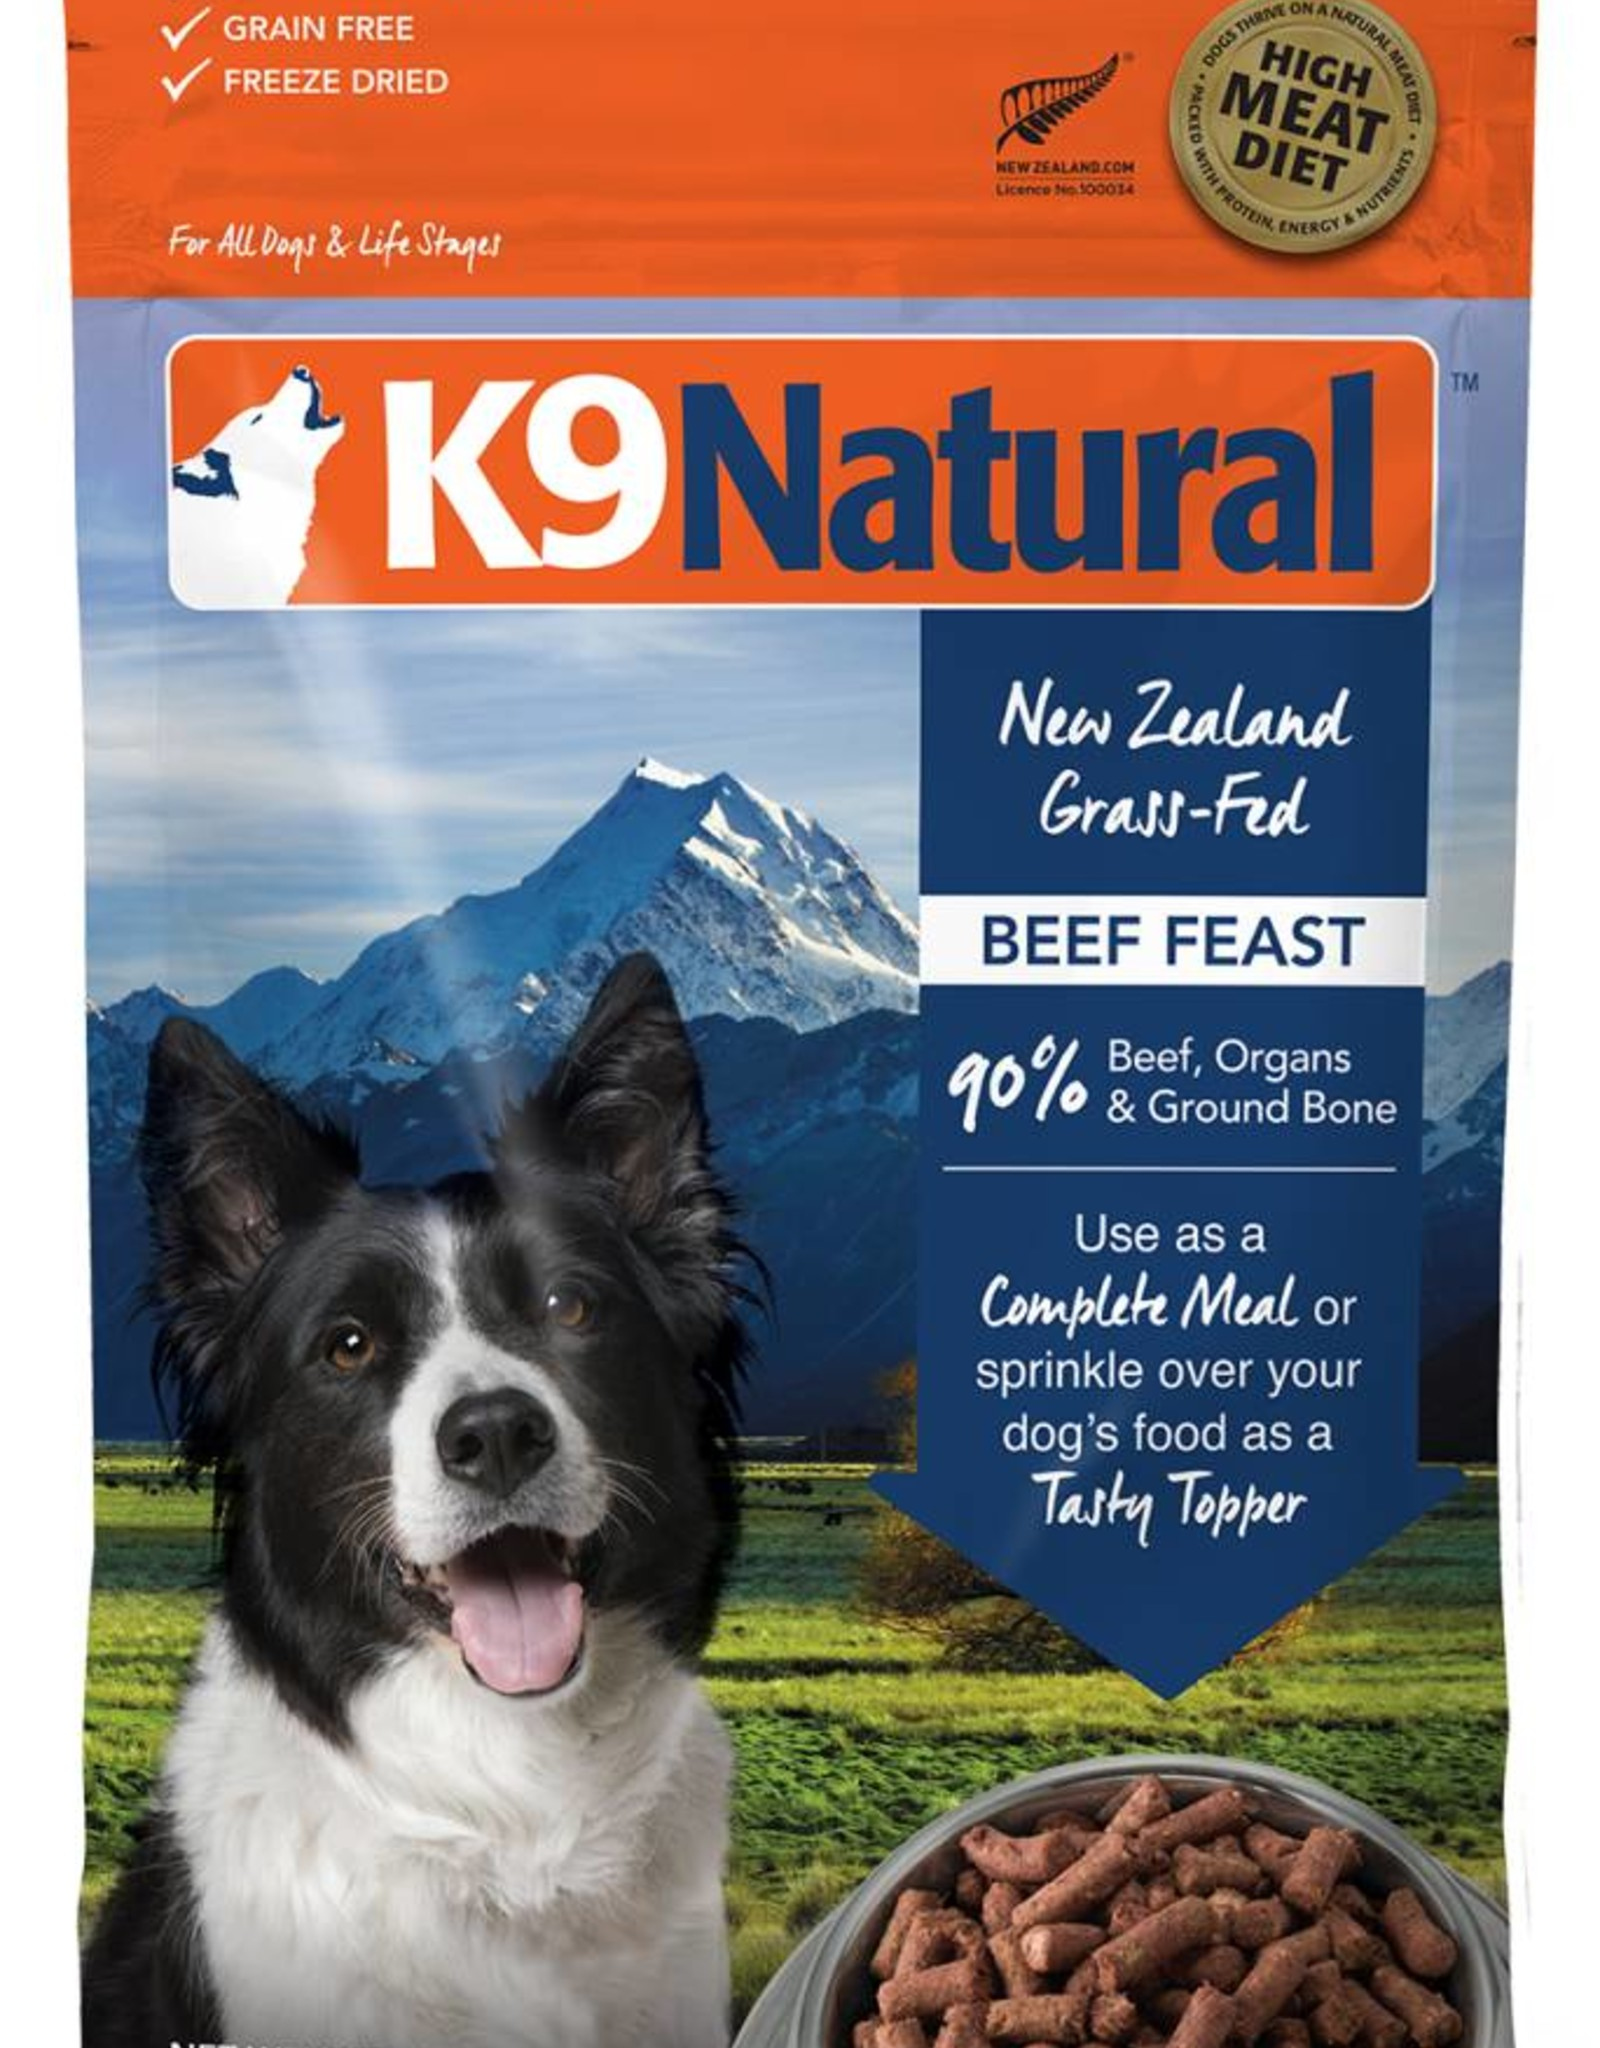 K9 Natural K9 Natural Freeze-Dried Beef Feast